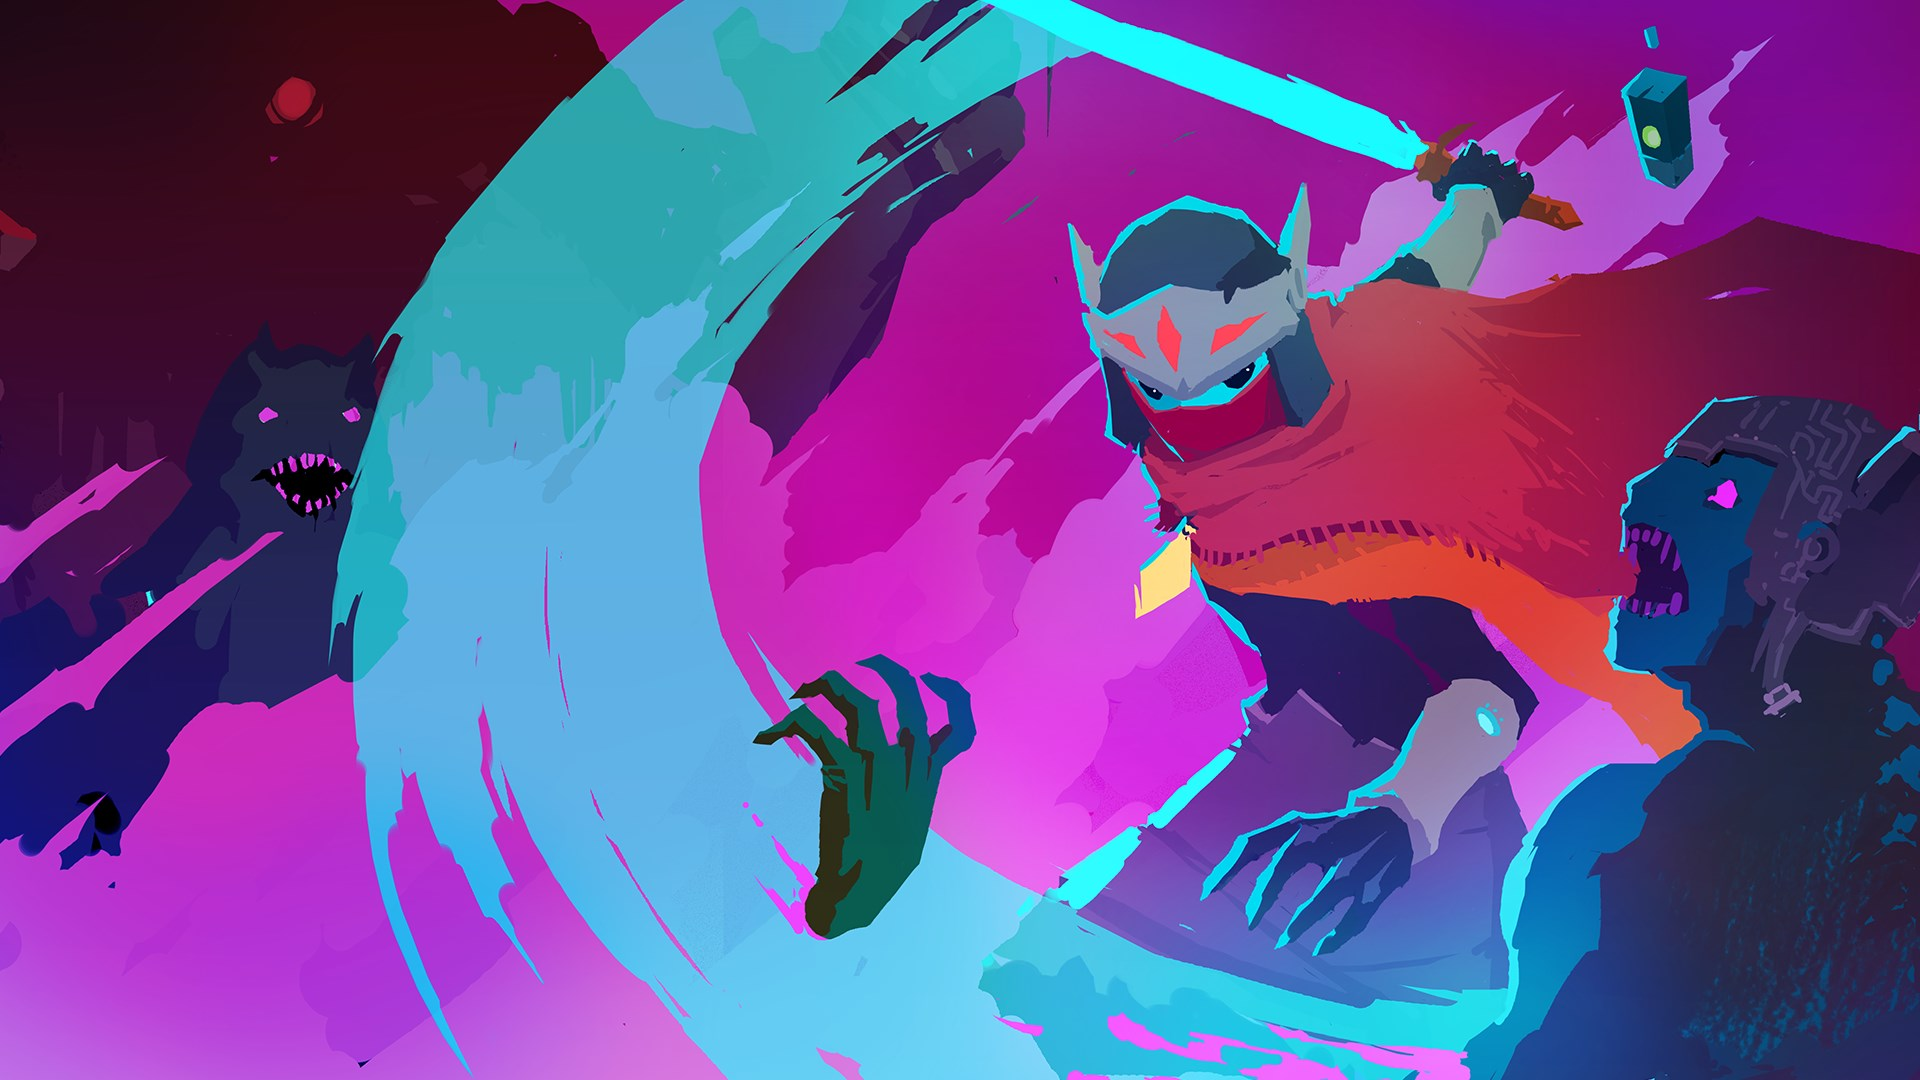 Hyper Light Drifter Is For Sale On The Apple Store For iPhone and iPad